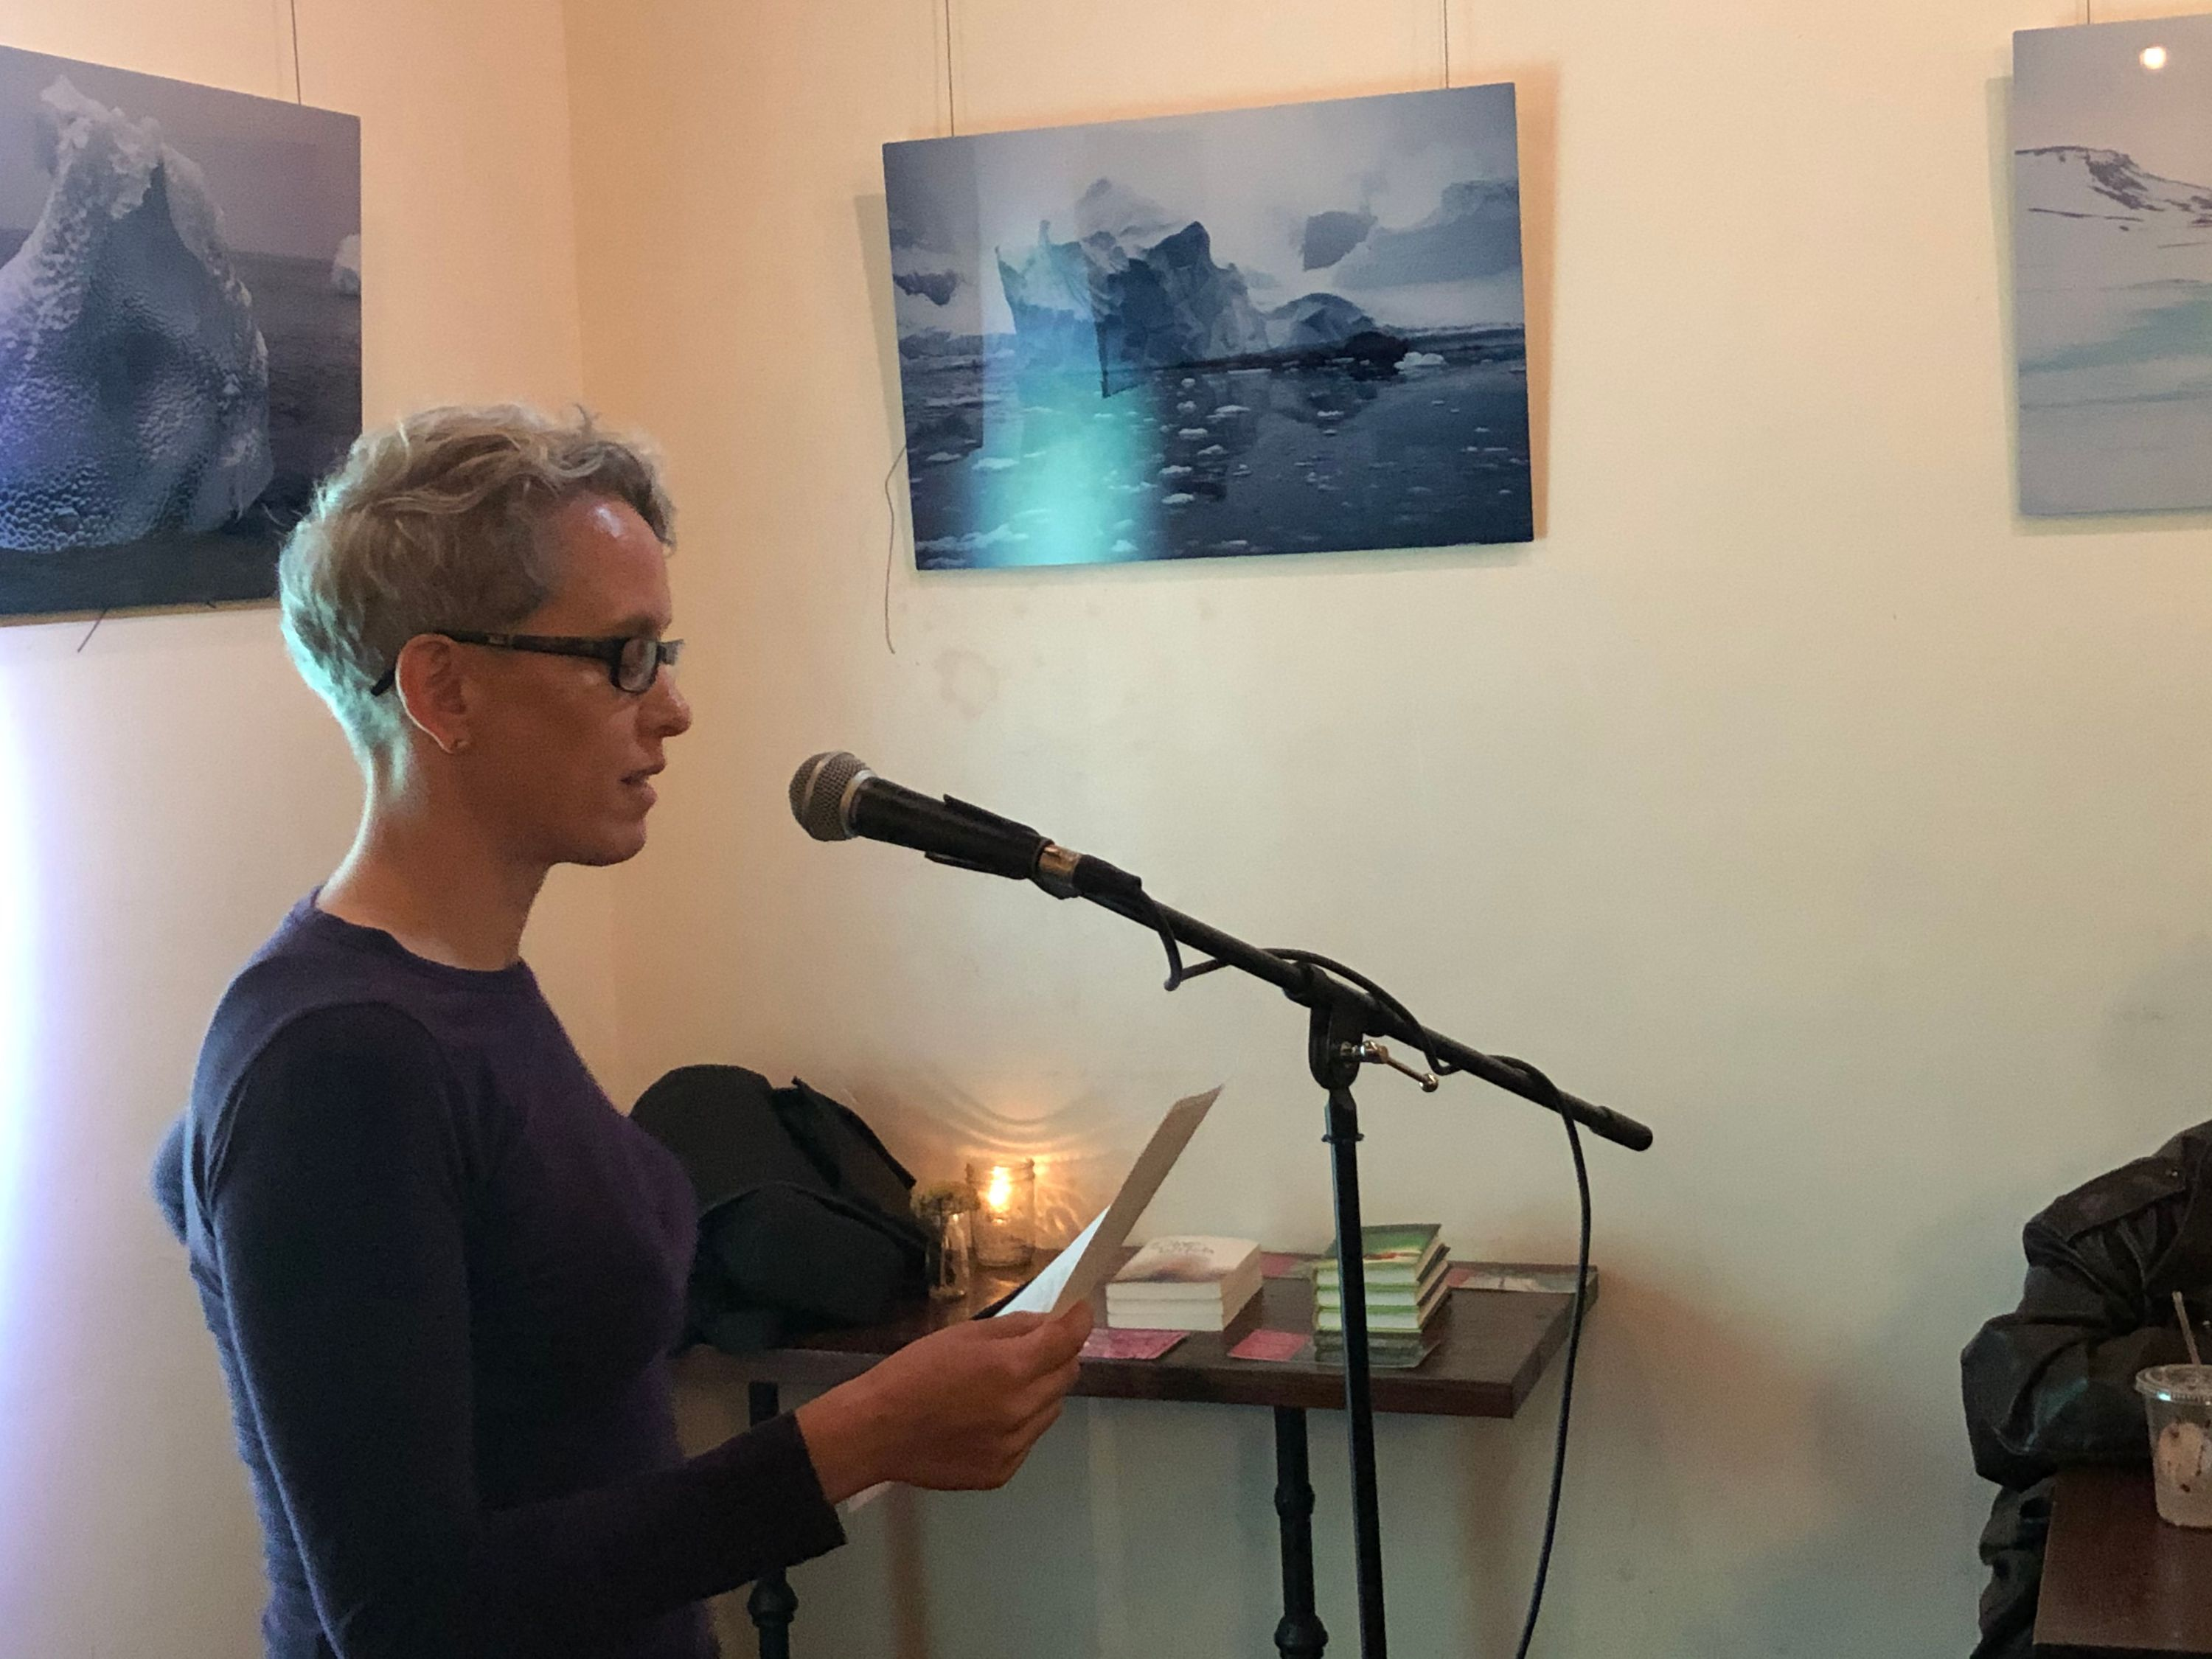 basia winograd at the first tuesdays open mic - oct 1 2019